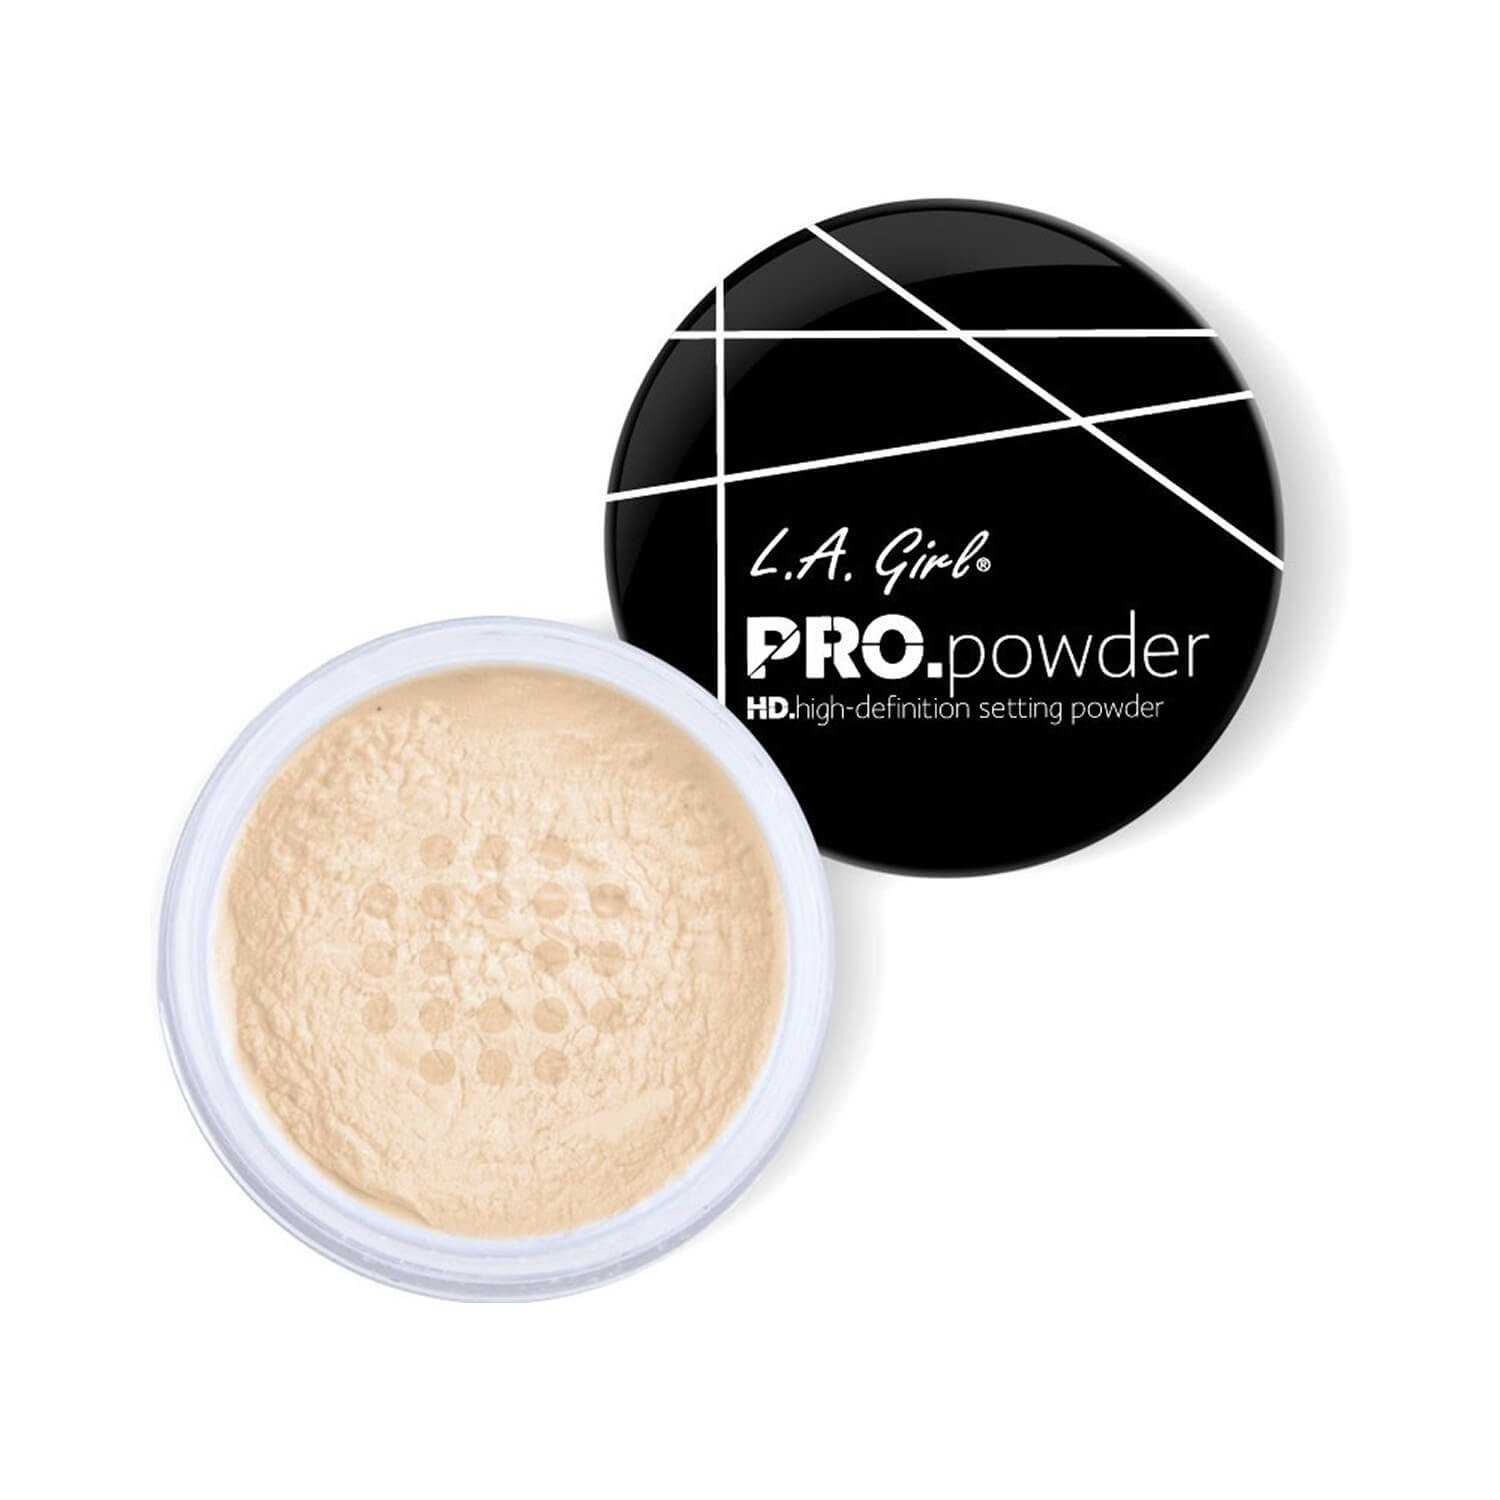 L.A. Girl Hd Pro Setting Powder   Banana Yellow by L.A. Girl